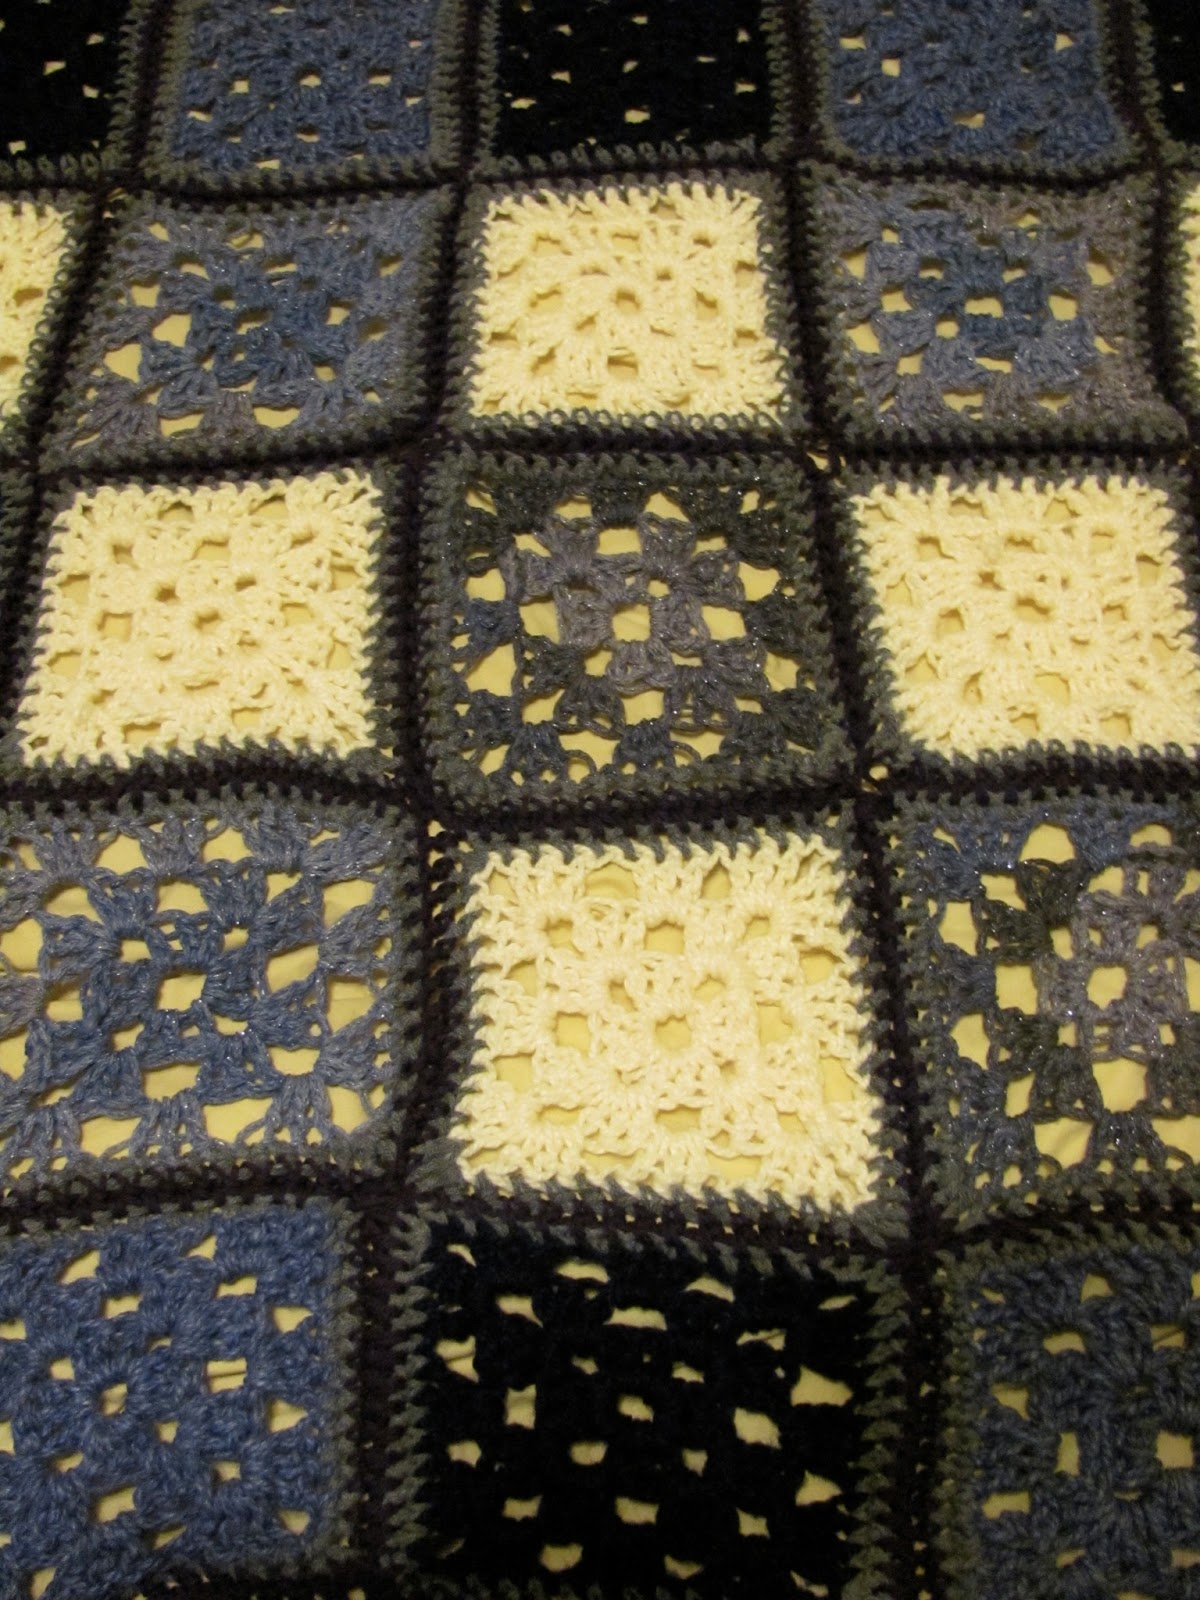 A closer look at the granny square pattern of the Thesis Blanket